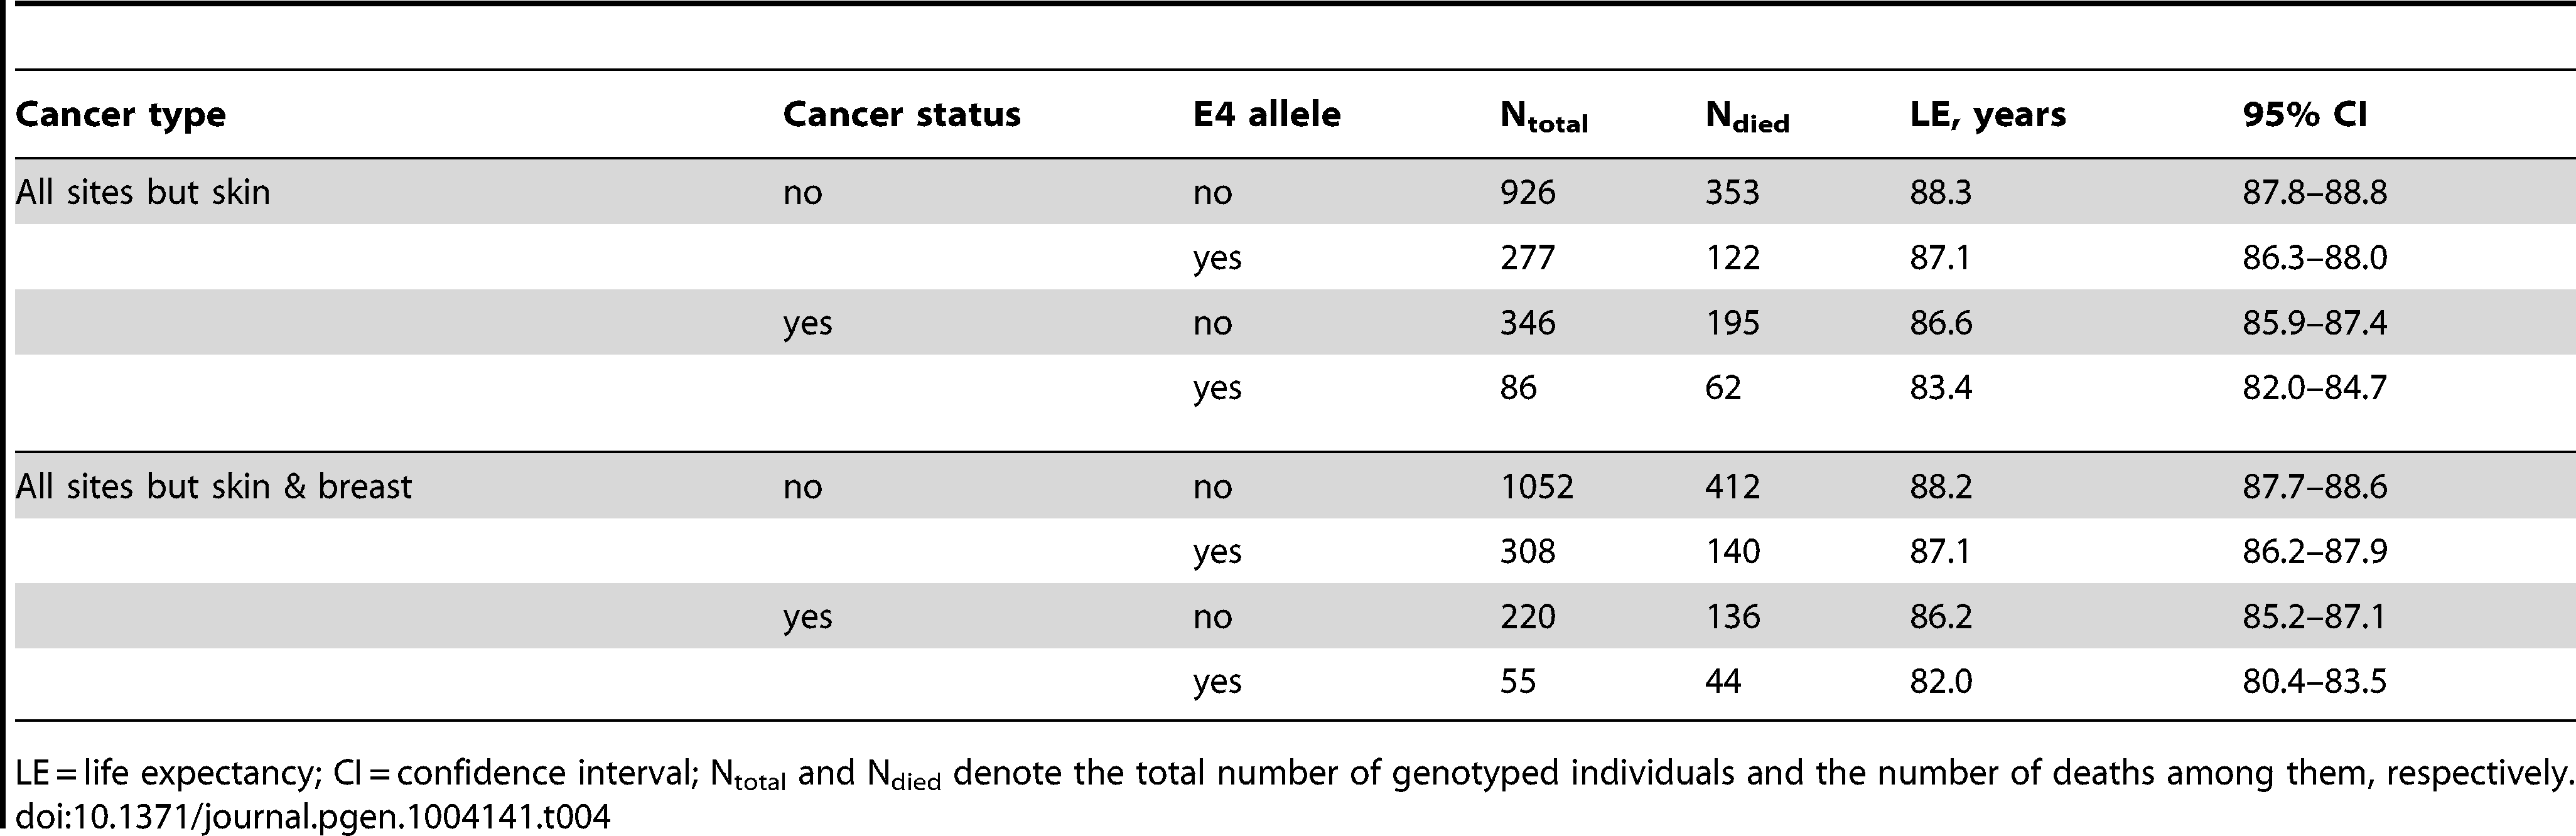 Kaplan-Meier estimates of life expectancy of the FHS and FHSO women from the more homogeneous group who were aged between 70 and 95 years at death or the end of follow up in 2008 stratified by cancer and the ApoE4 statuses.